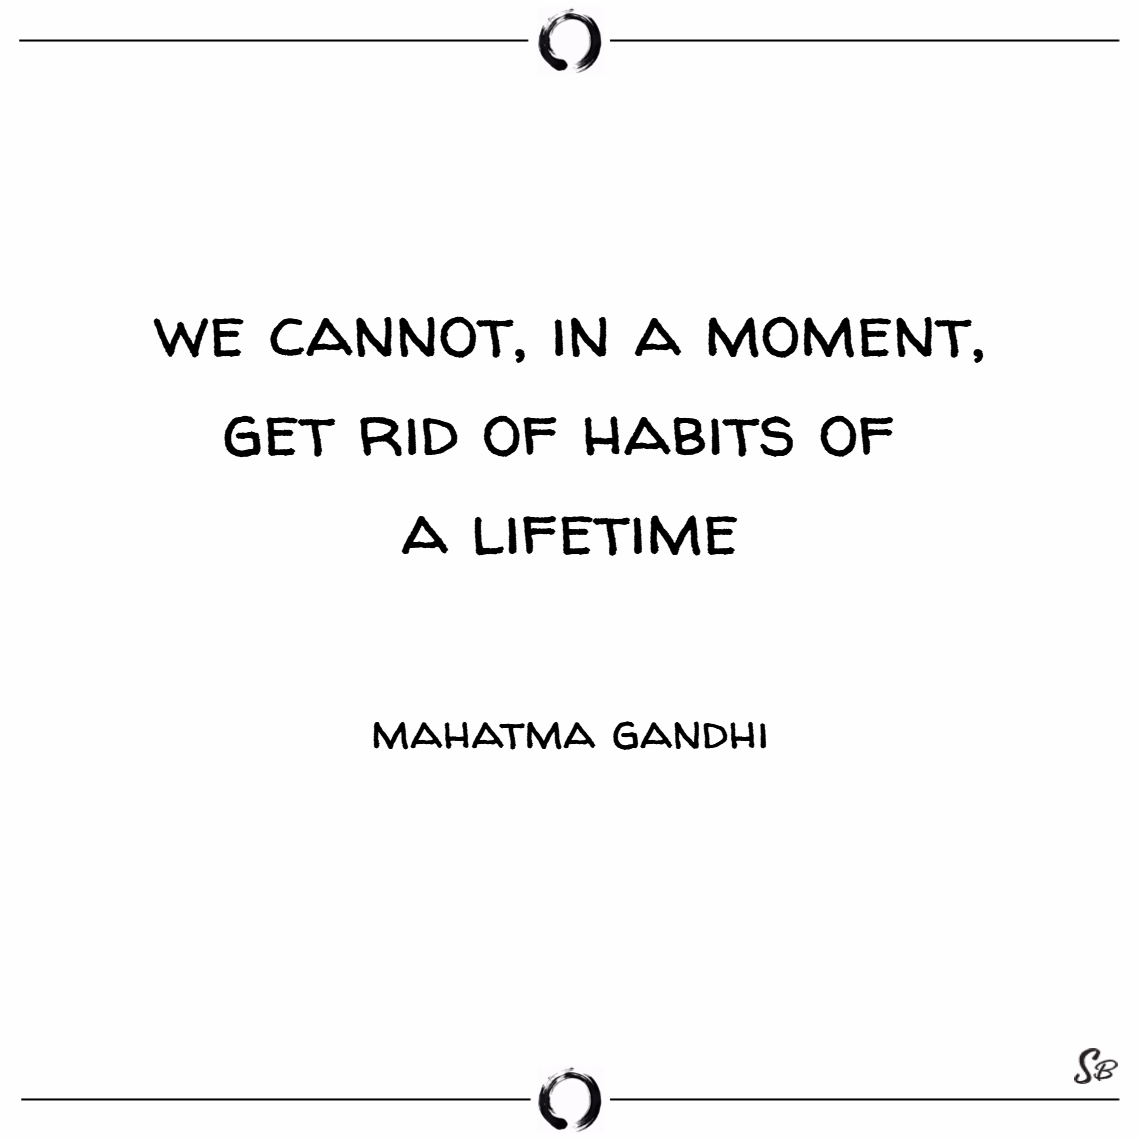 We cannot, in a moment, get rid of habits of a lifetime. – mahatma gandhi